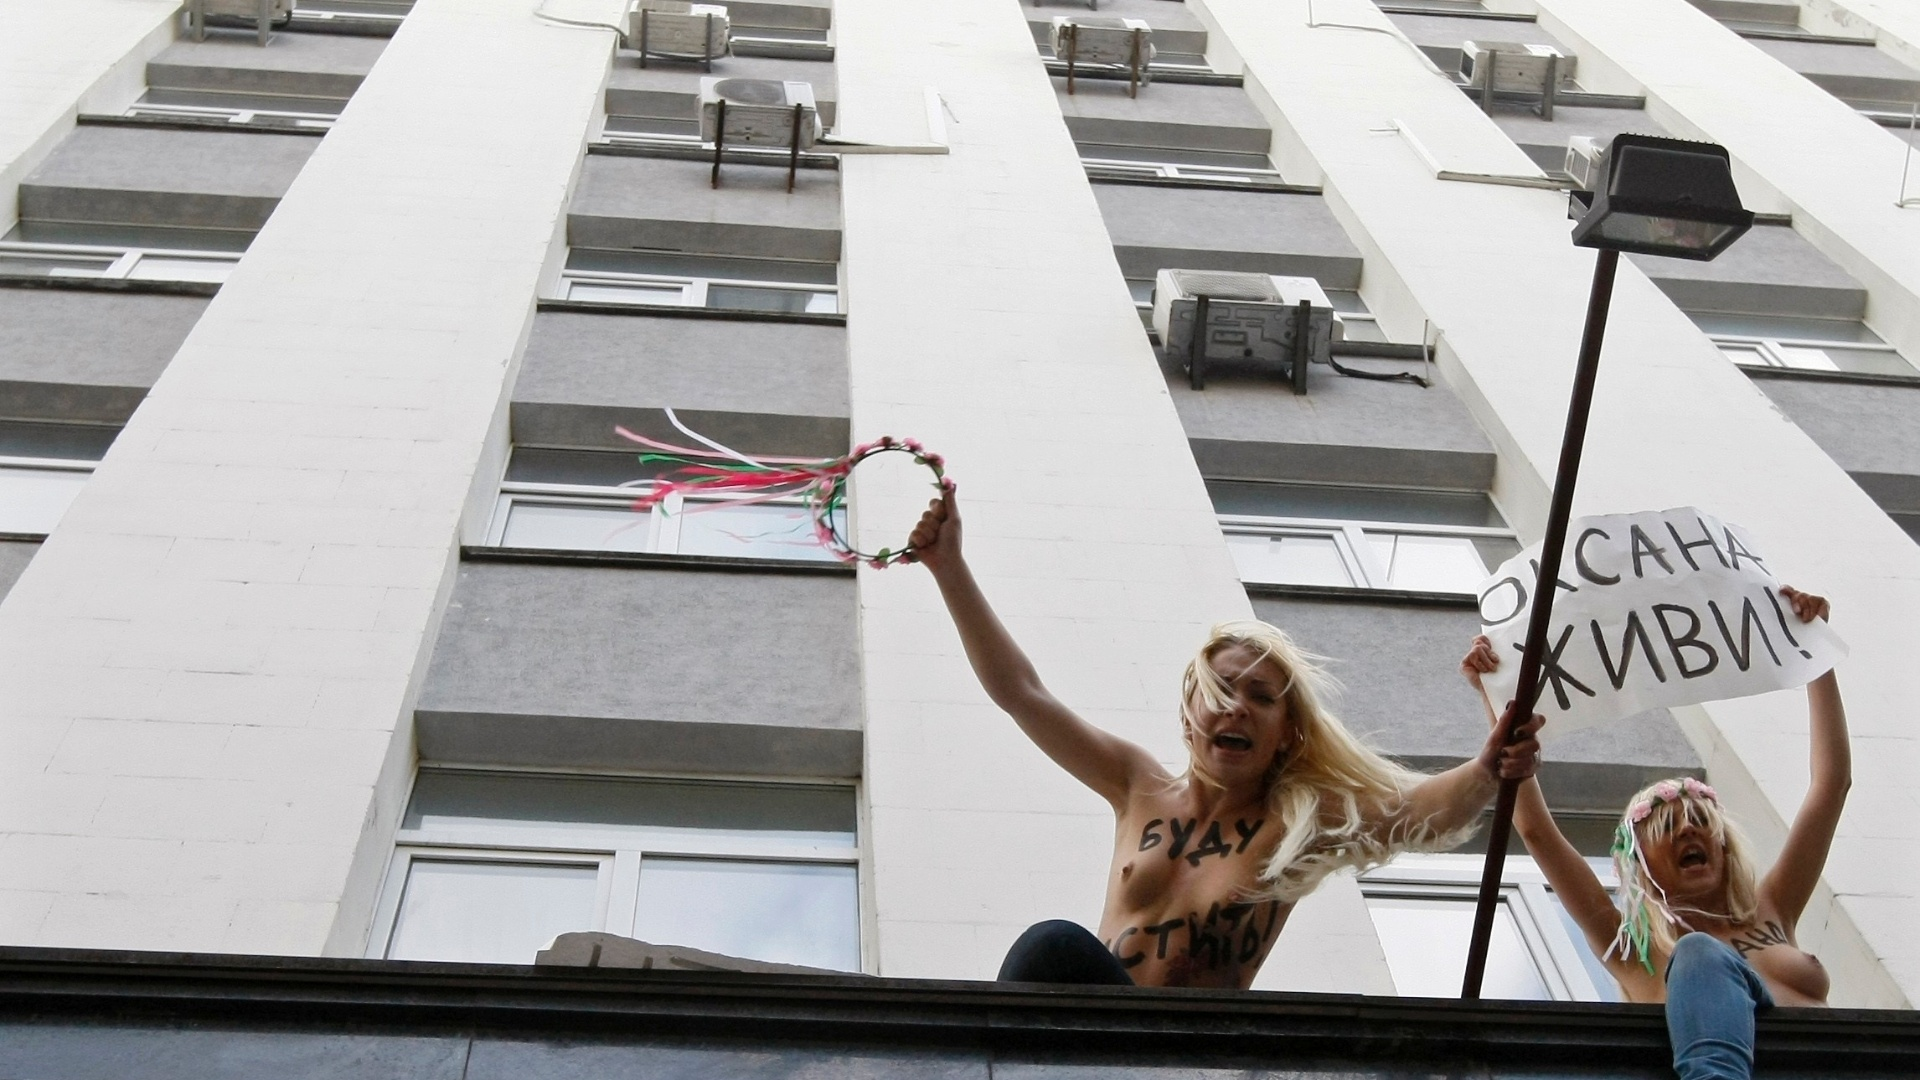 Ativistas do grupo feminista ucraniano Femen protestam, em frente ao prdio da promotoria do pas, em Kiev